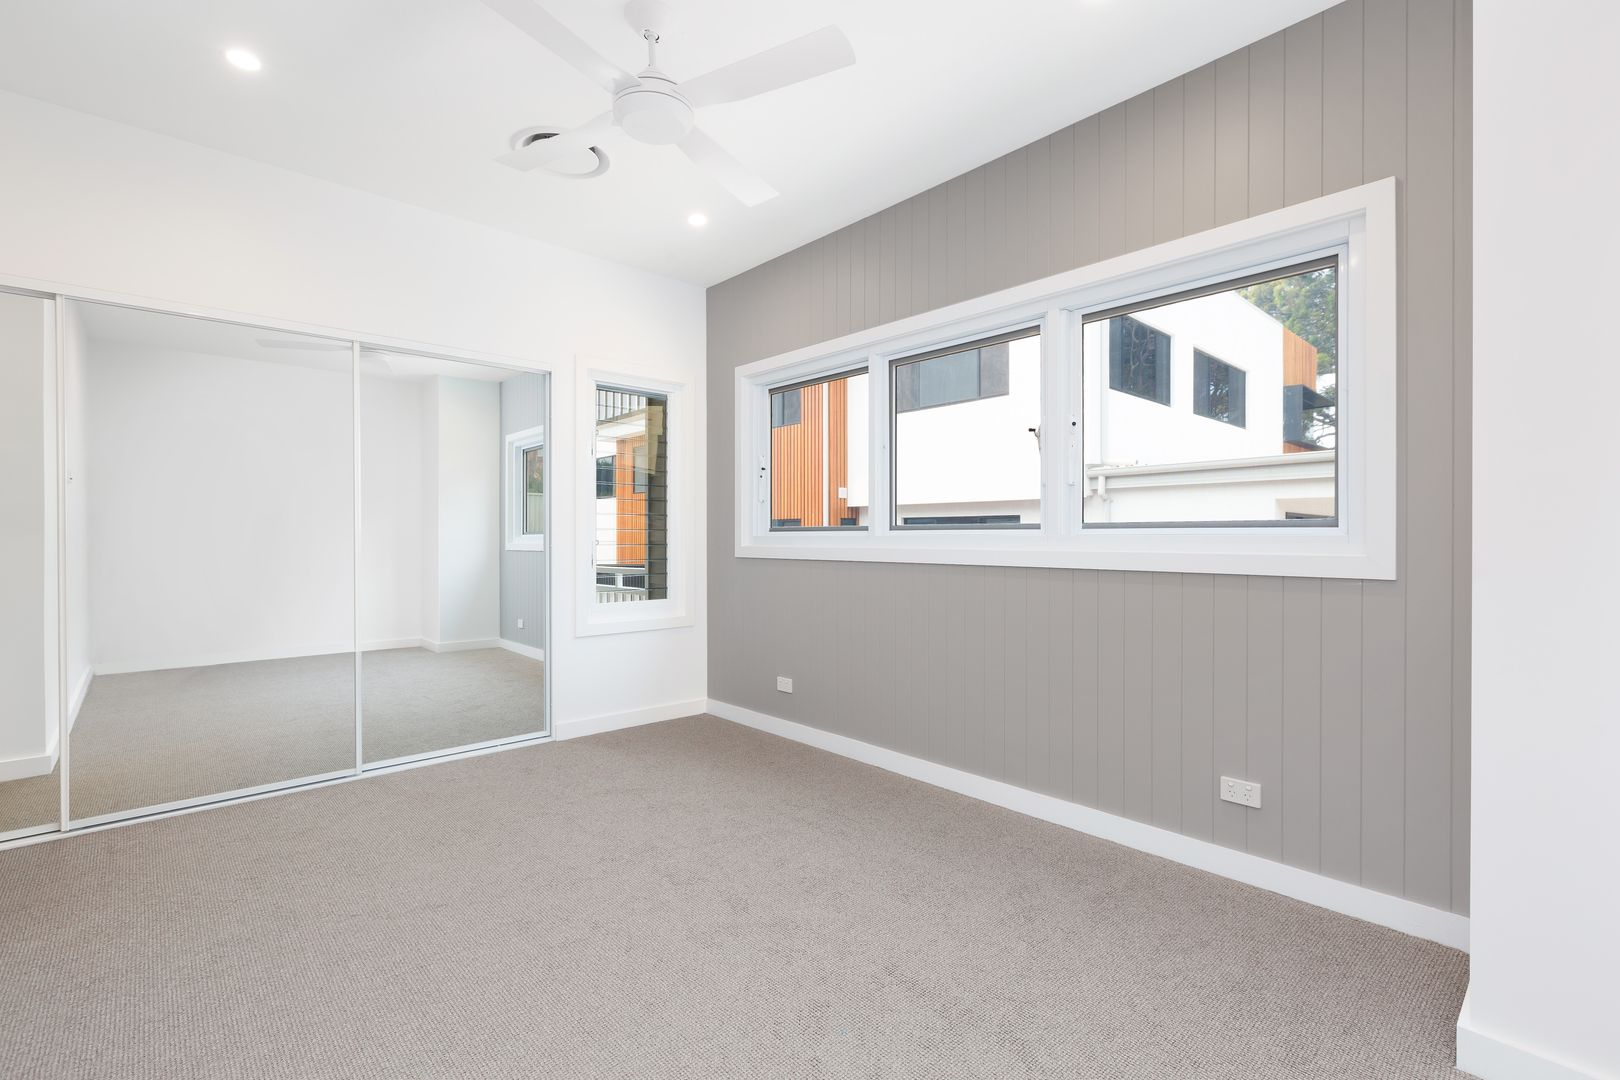 2/6 Dudley Avenue, Caringbah South NSW 2229, Image 2